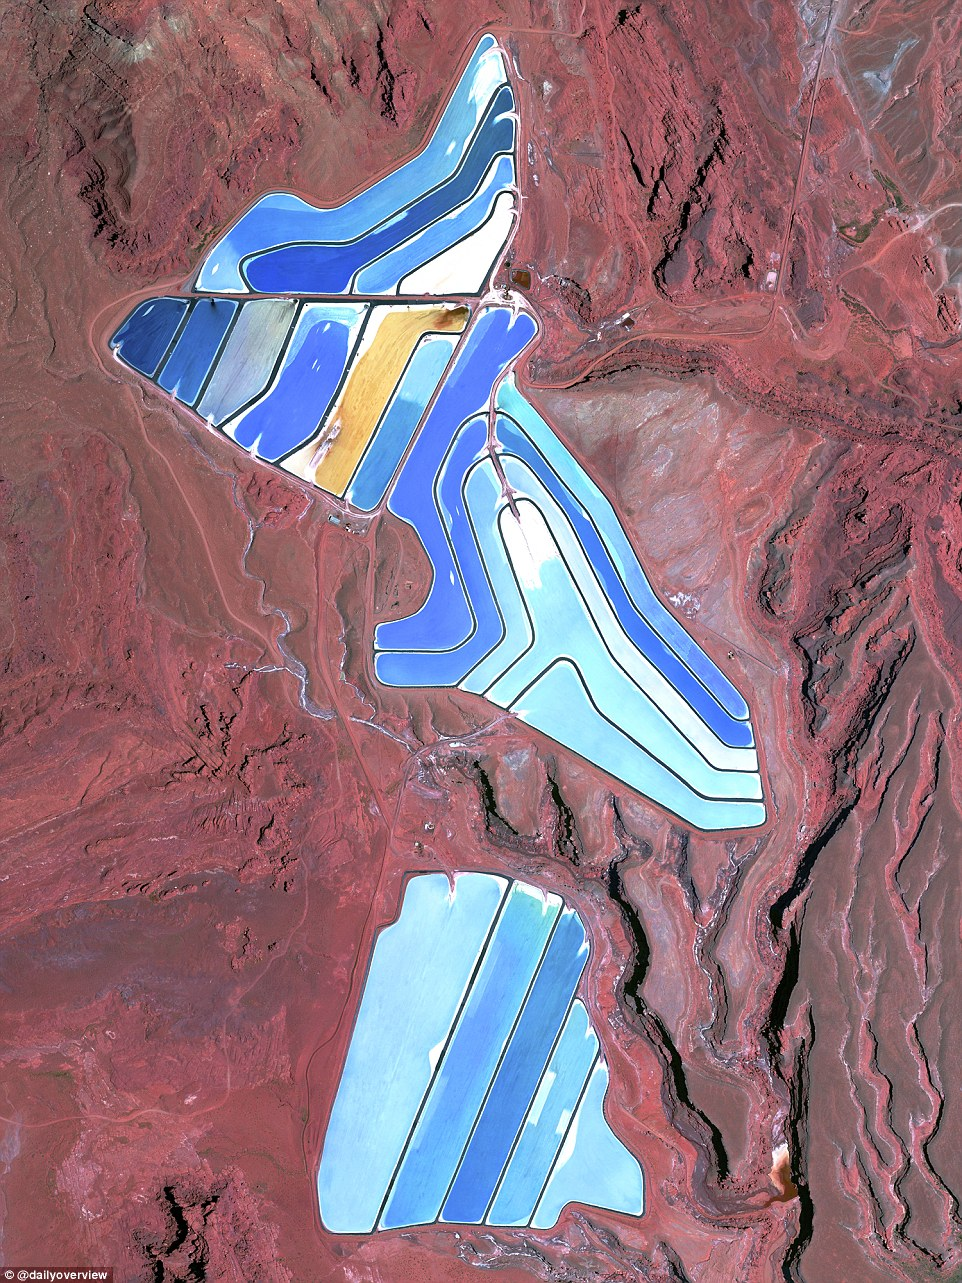 The Moab Potash Ponds in Utah is a stunning example of vibrant colour contrast between the bright blue water and salt